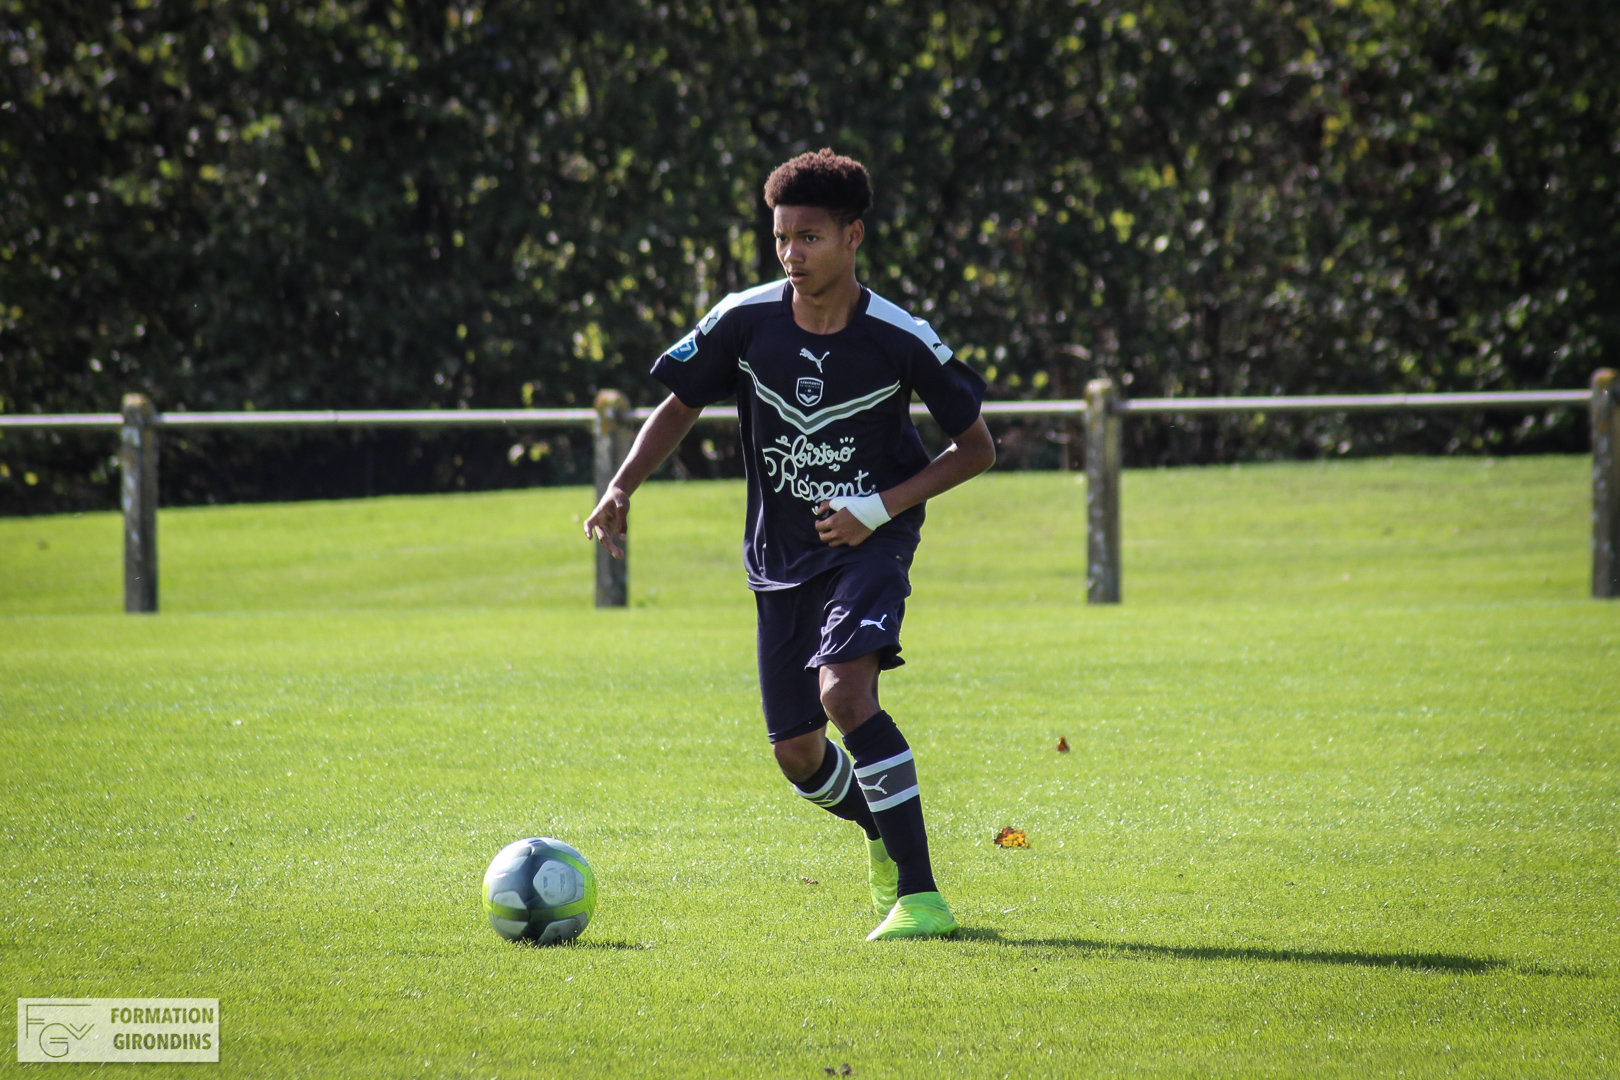 Cfa Girondins : Lenny Pirringuel buteur lors du match nul des U16 - Formation Girondins